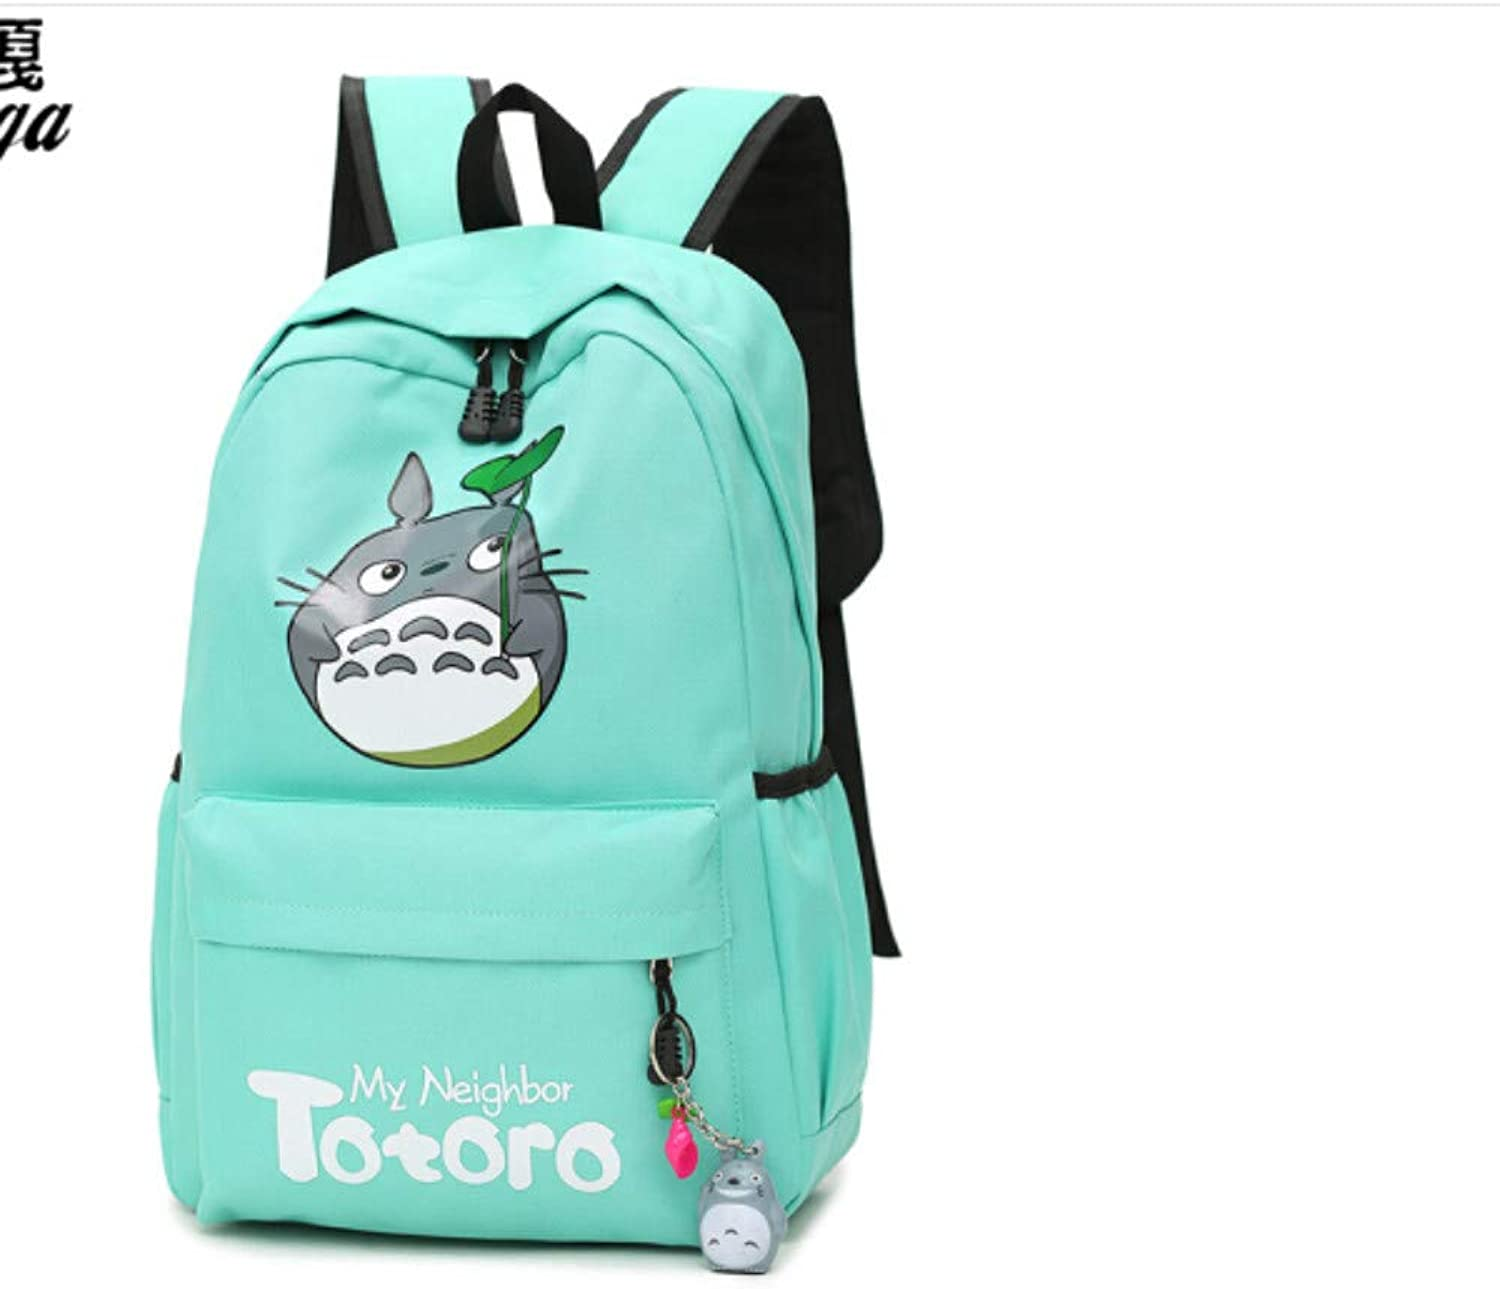 Student Campus Large Backpack Waterproof Backpack ins Simple Wild